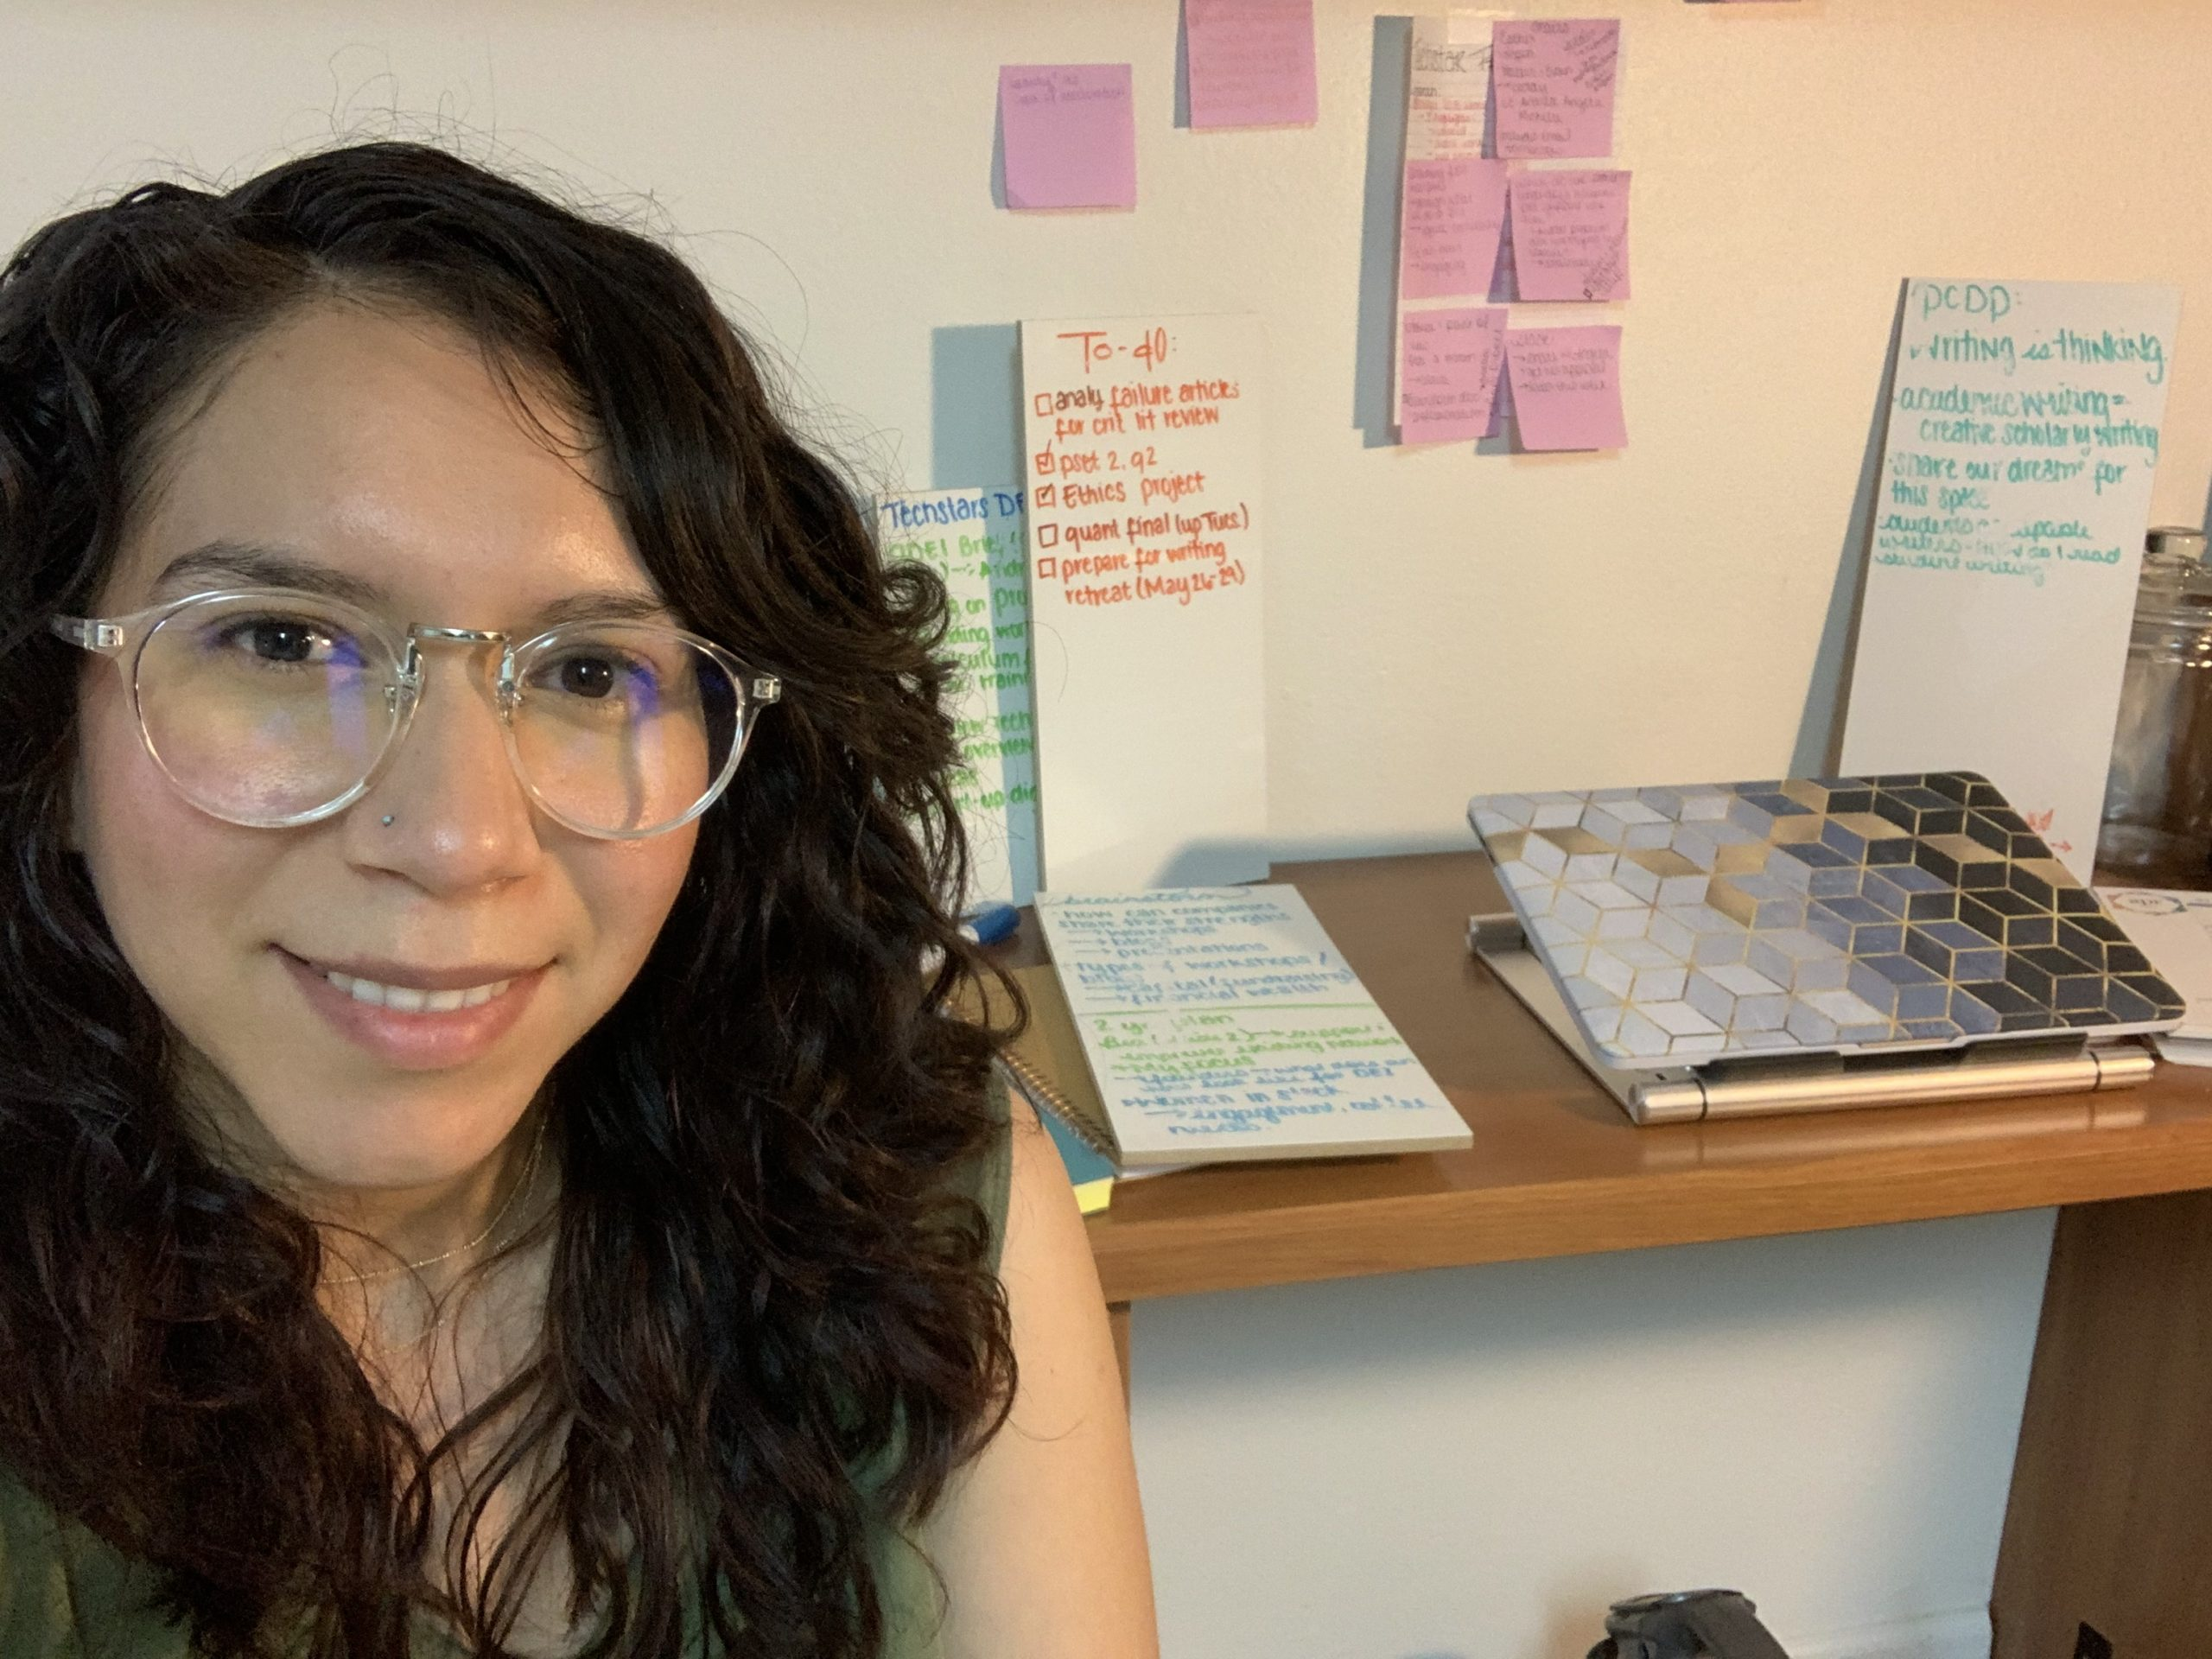 University of Colorado-Boulder Graduate Student Beatriz Salazar started her internship in person at Boulder-based Techstars, but it moved online this March because of COVID-19. She now works remotely from her home office. Salazar is a member of the Society of Hispanic Professional Engineers.